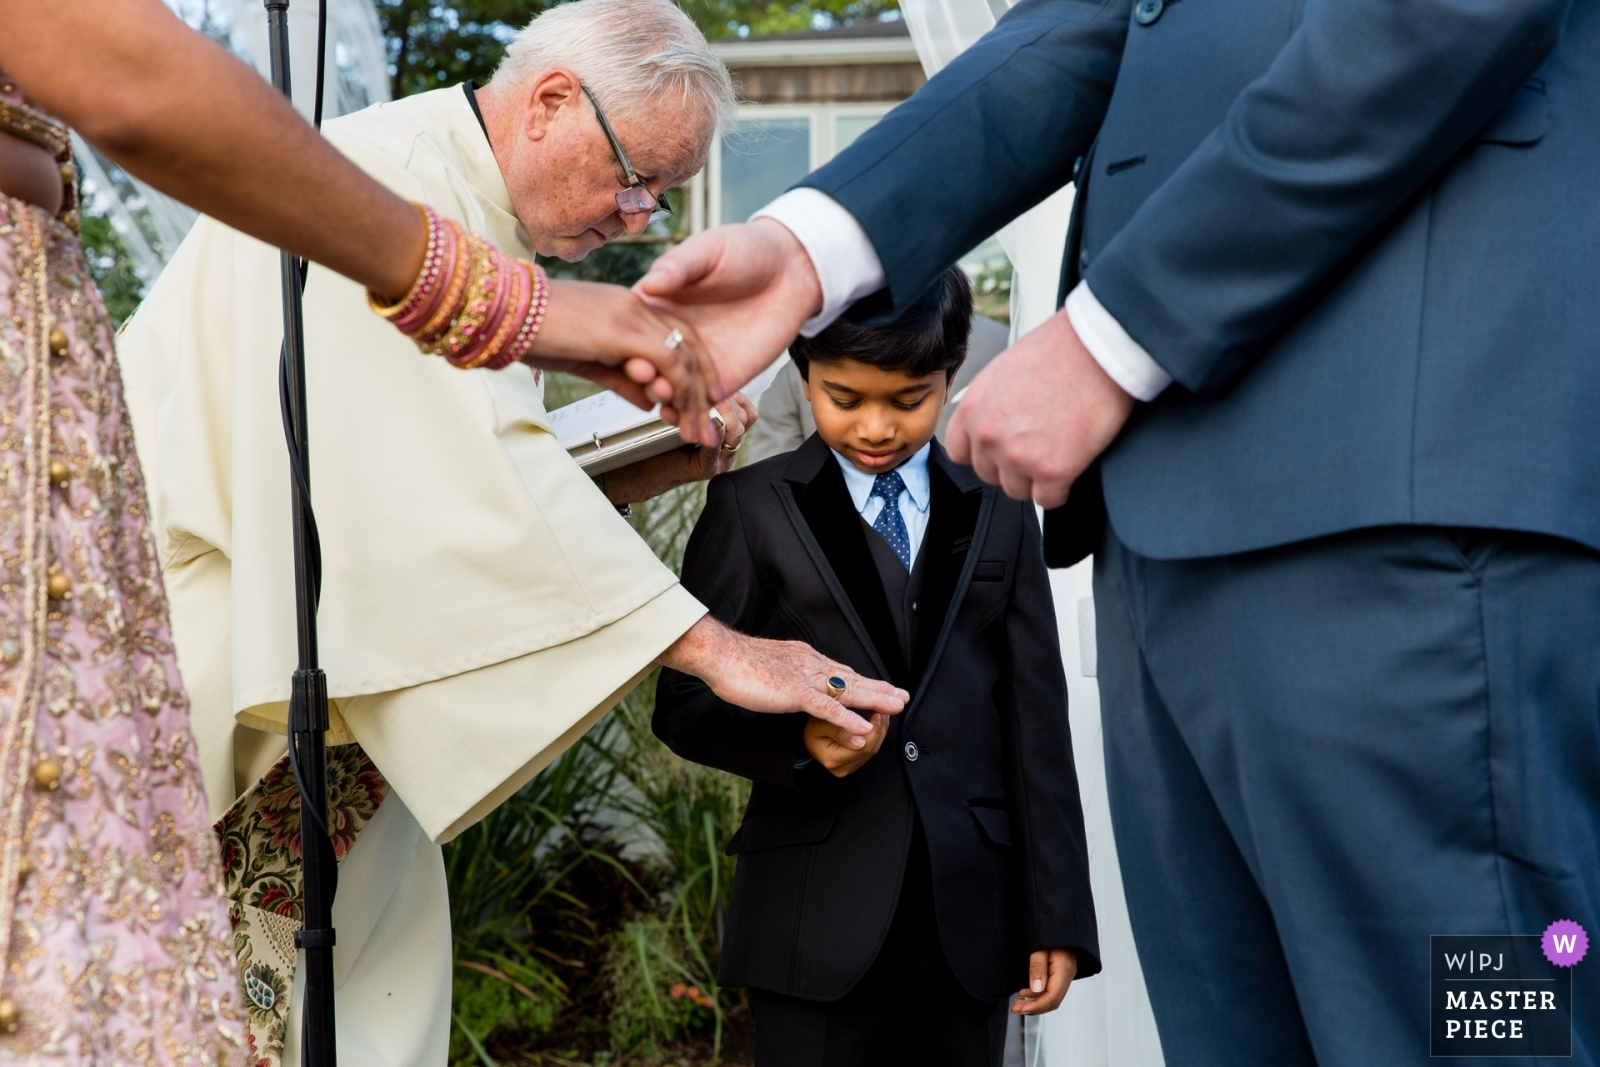 Boy with rings - New York - Long Island, United States Wedding Photography -  | Soundview Caterers, Bayville Long Island, Ceremony